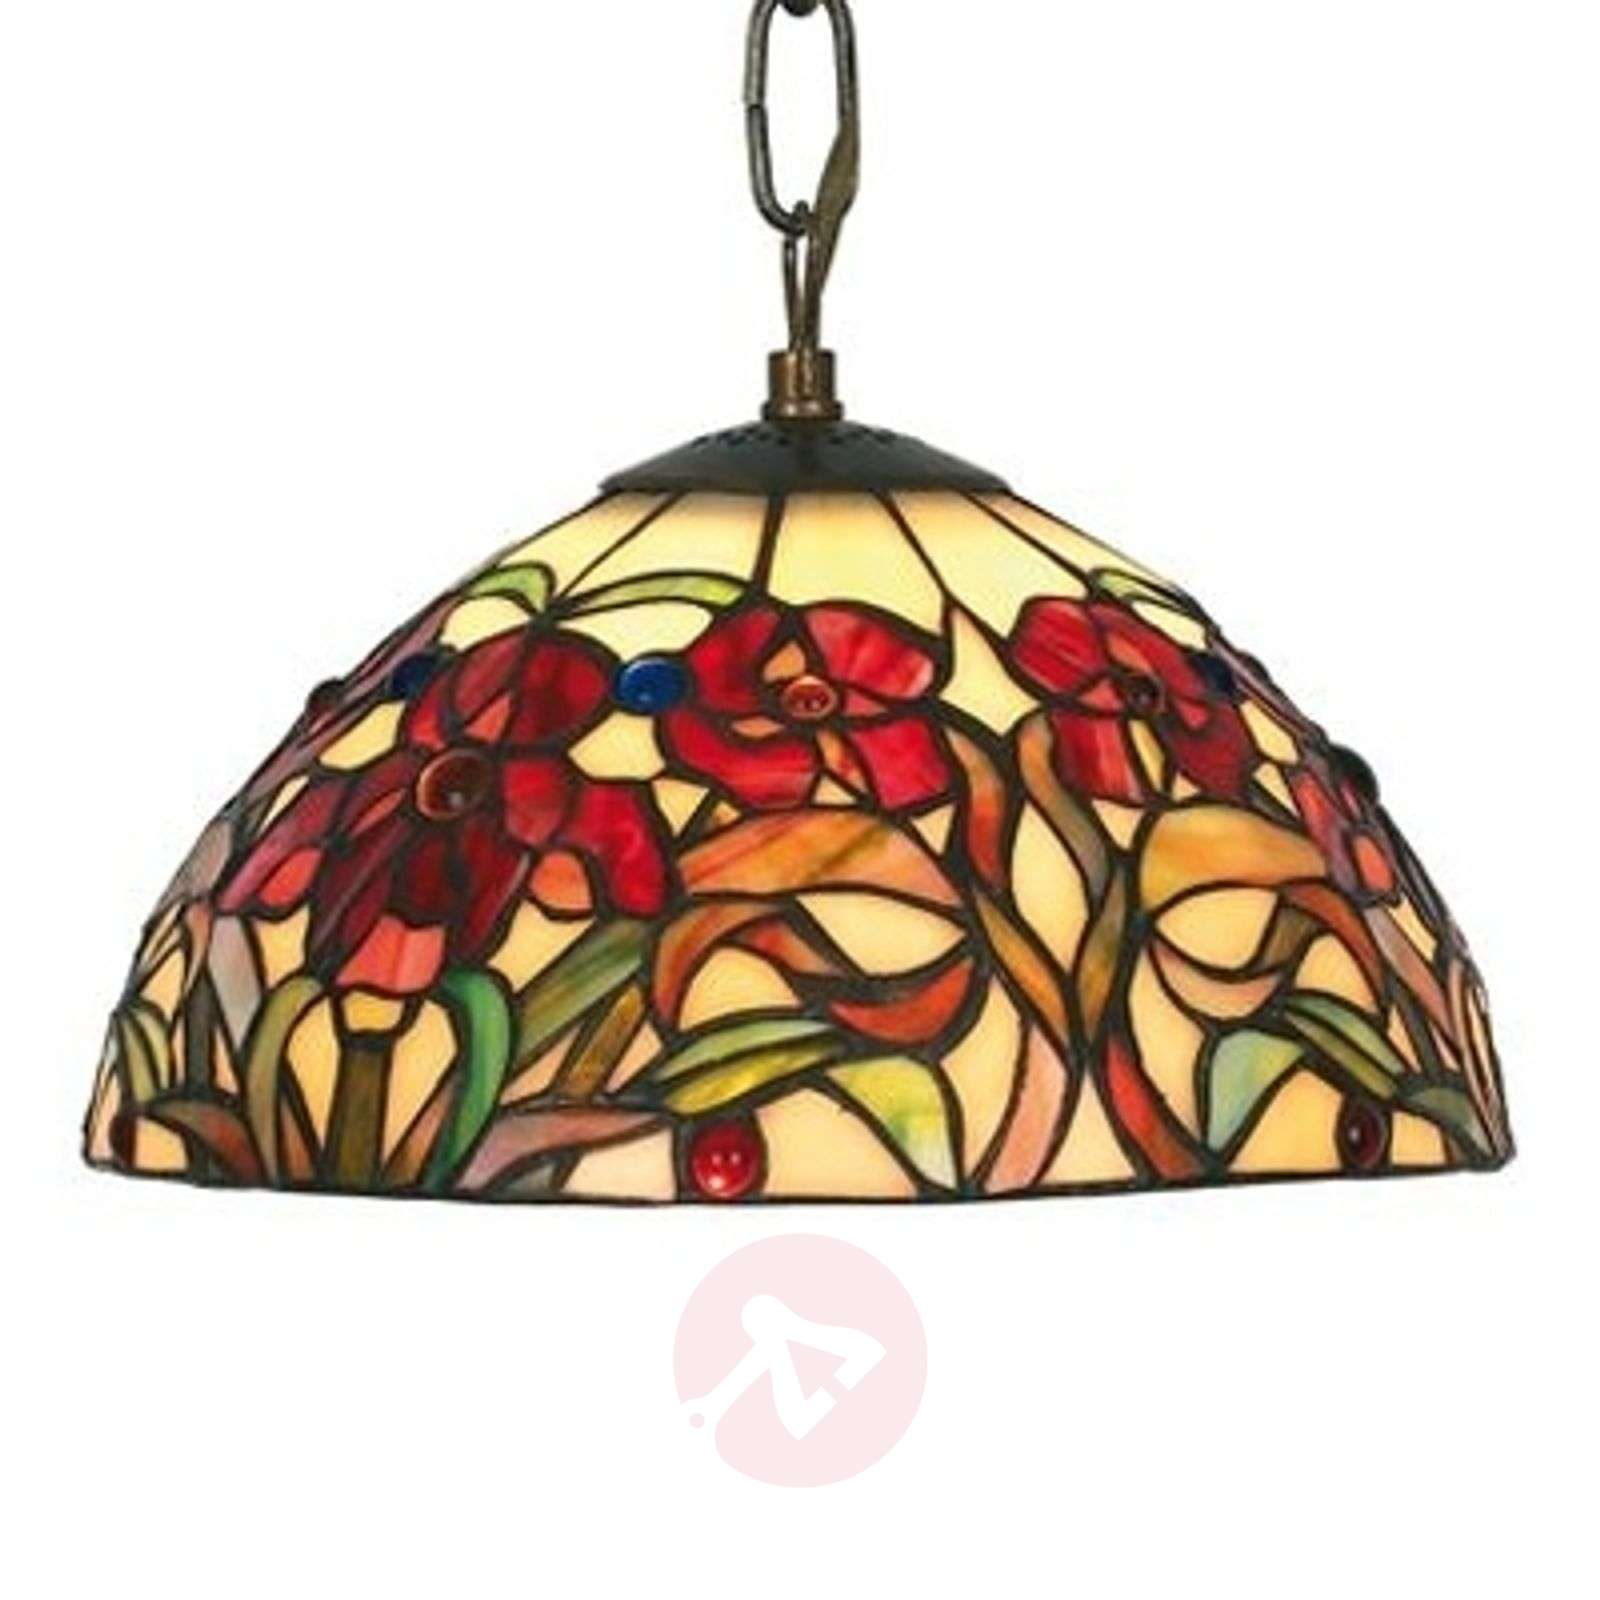 Beautiful hanging light Eline in Tiffany style-1032168-01